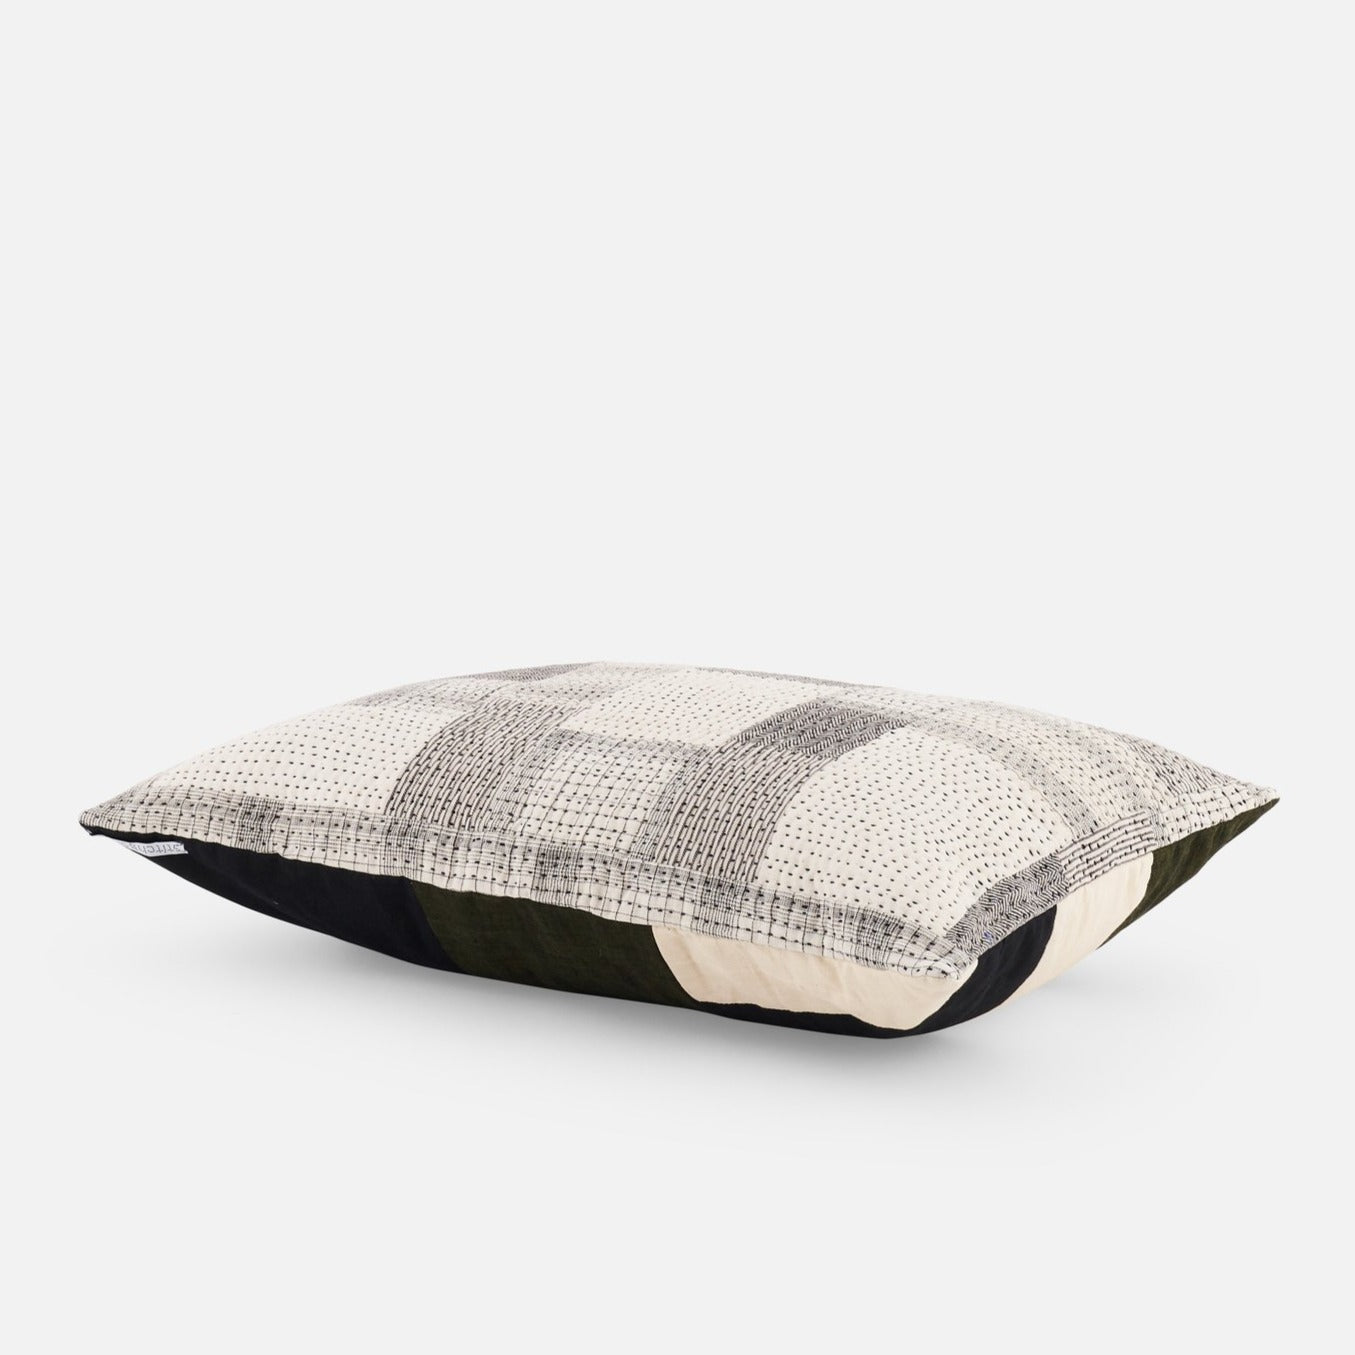 Organic cotton patchwork lumber cushion with Kantha stitch detailing